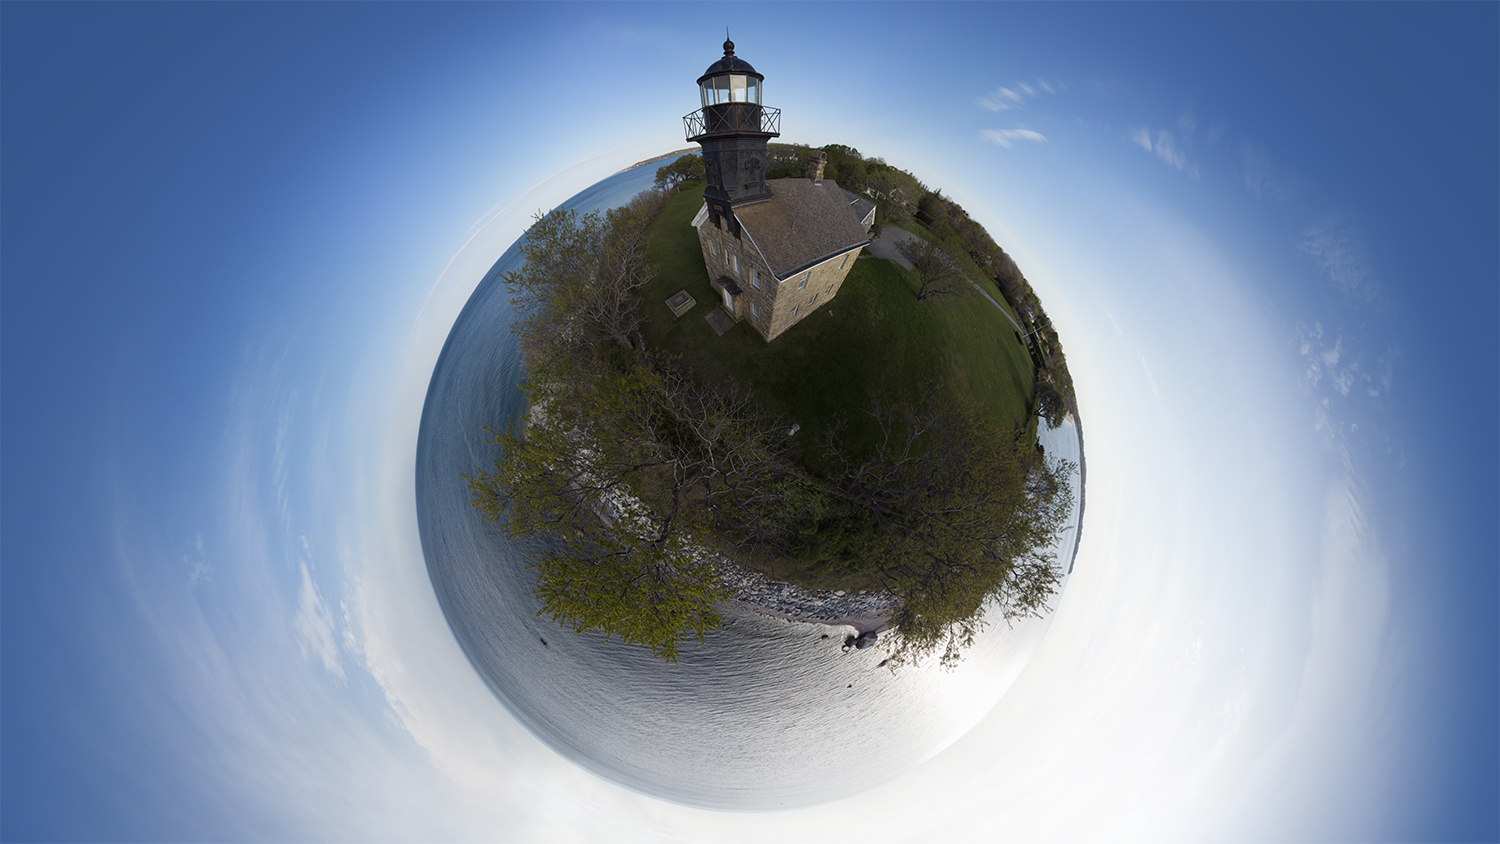 An aerial 360 of the Old Field Point Lighthouse in New York. I took this photo while my daughter was sleeping in the car next to me in a matter of ten minutes.